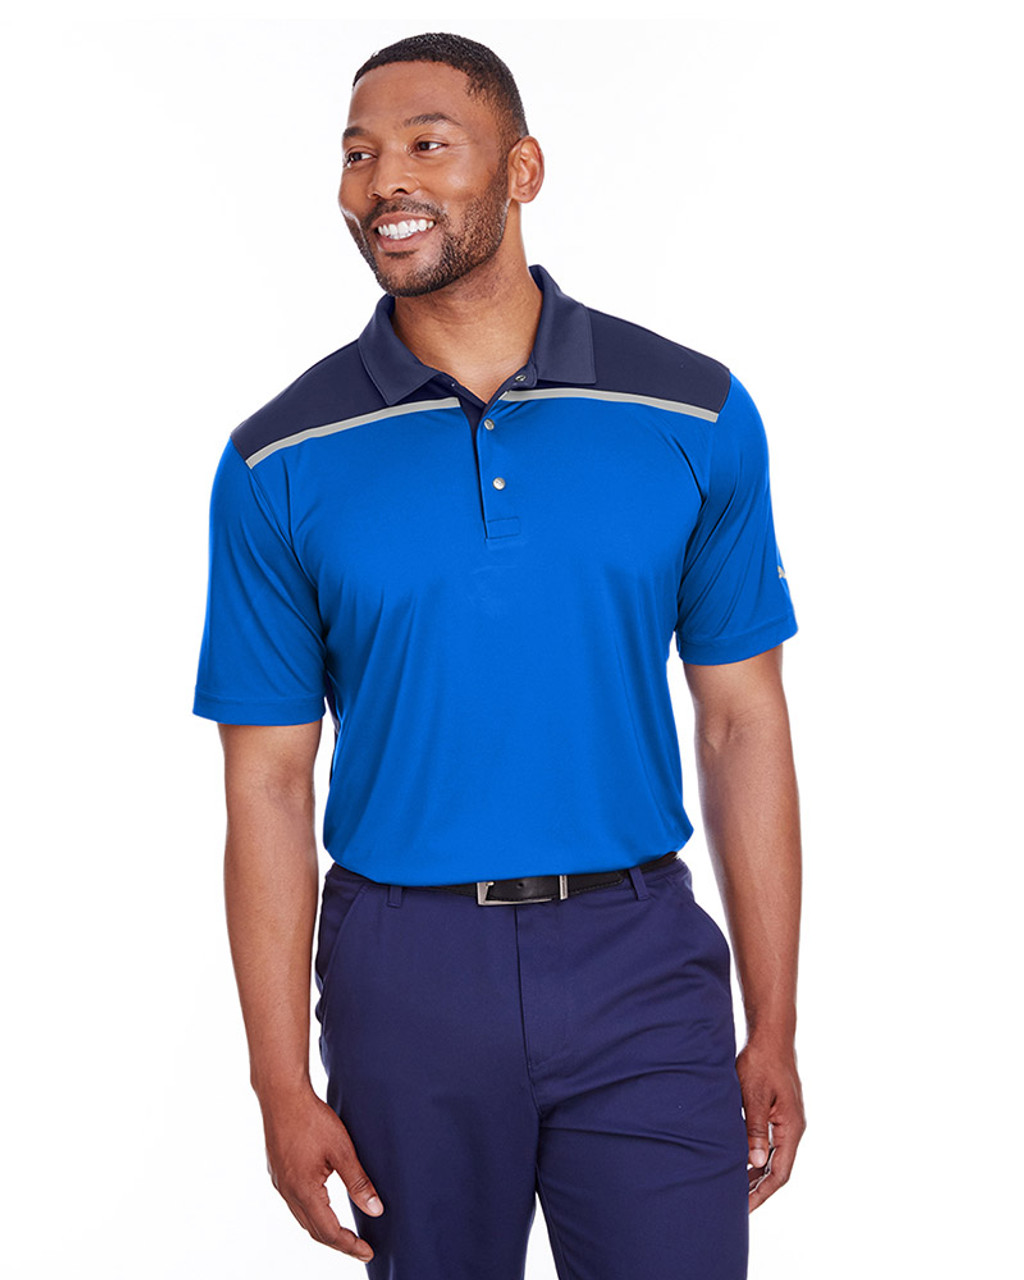 Lapis Blue/Peacoat - 596805 Puma Golf Men's Bonded Colorblock Polo | Blankclothing.ca